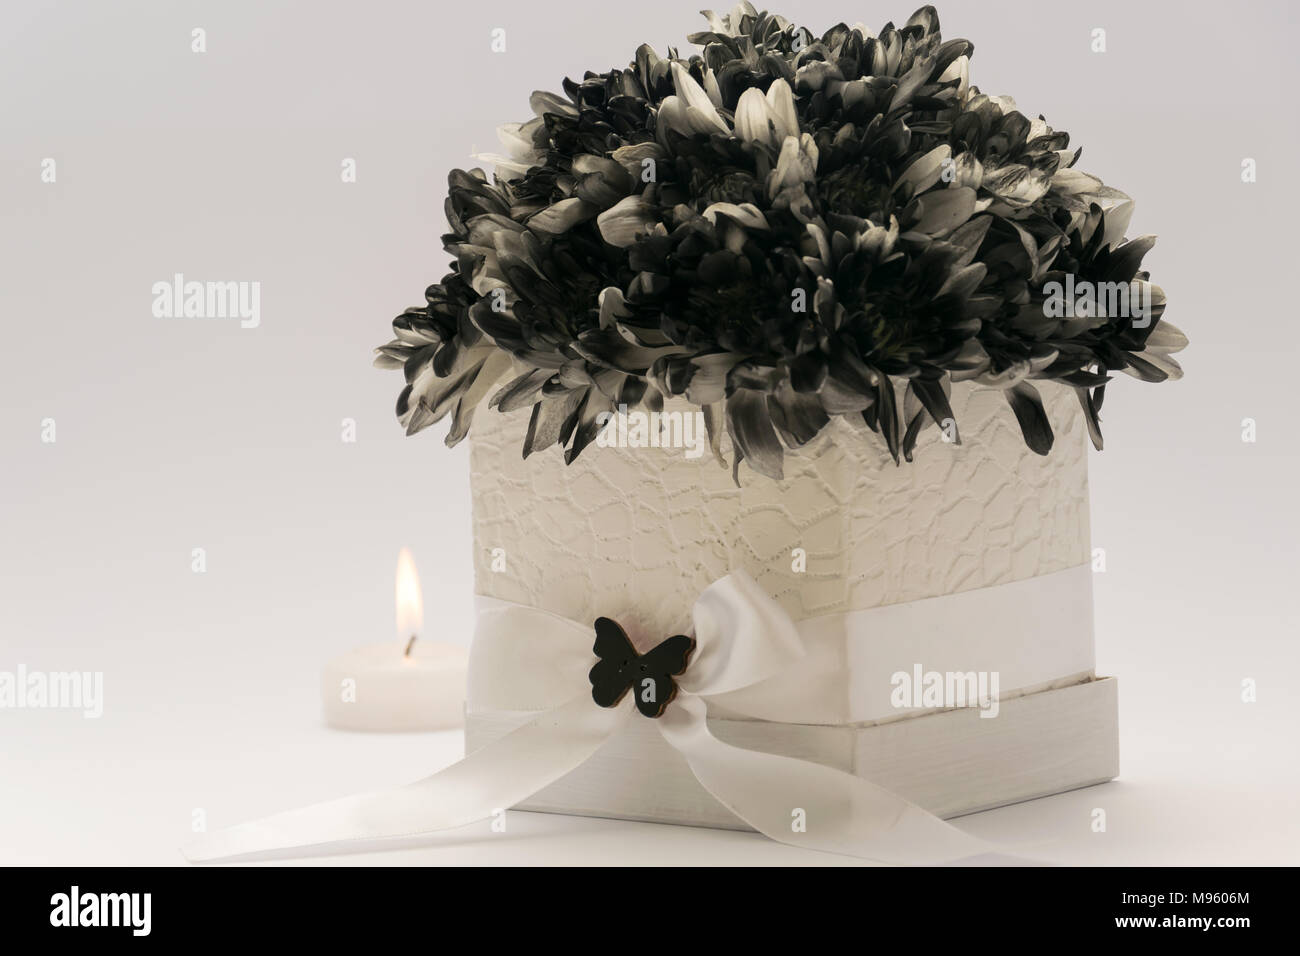 Anniversary Card With Flowers Stockfotos & Anniversary Card With ...